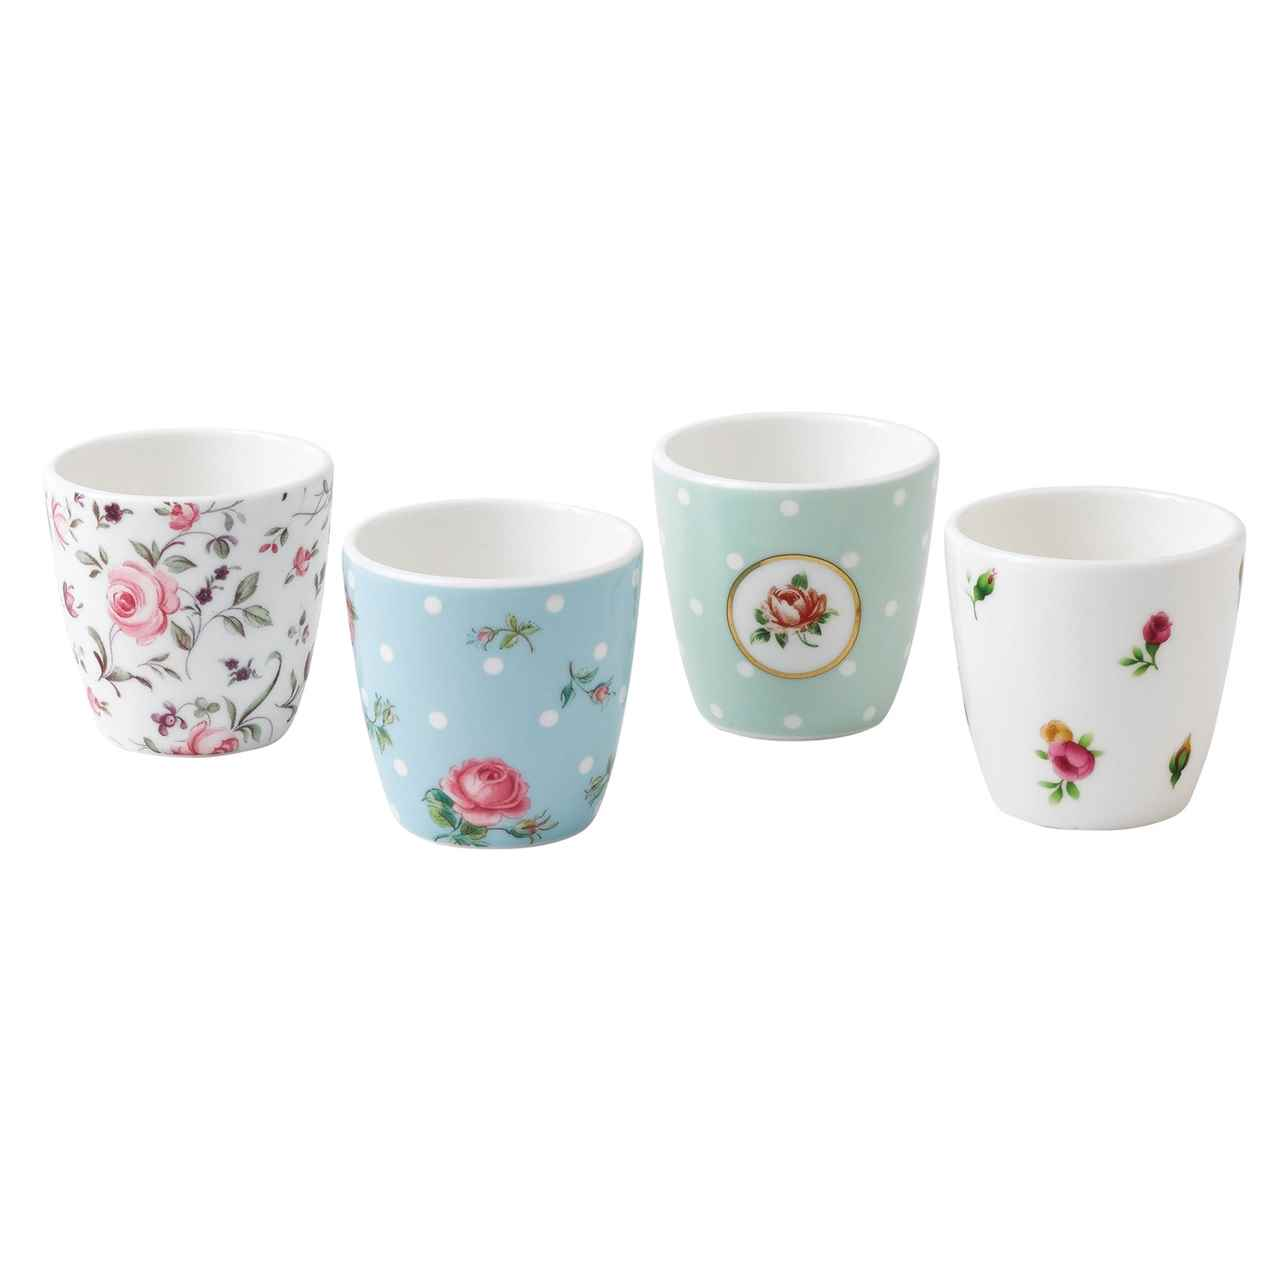 Royal Albert Giftware Small Cups / Egg Cup, Set of 4